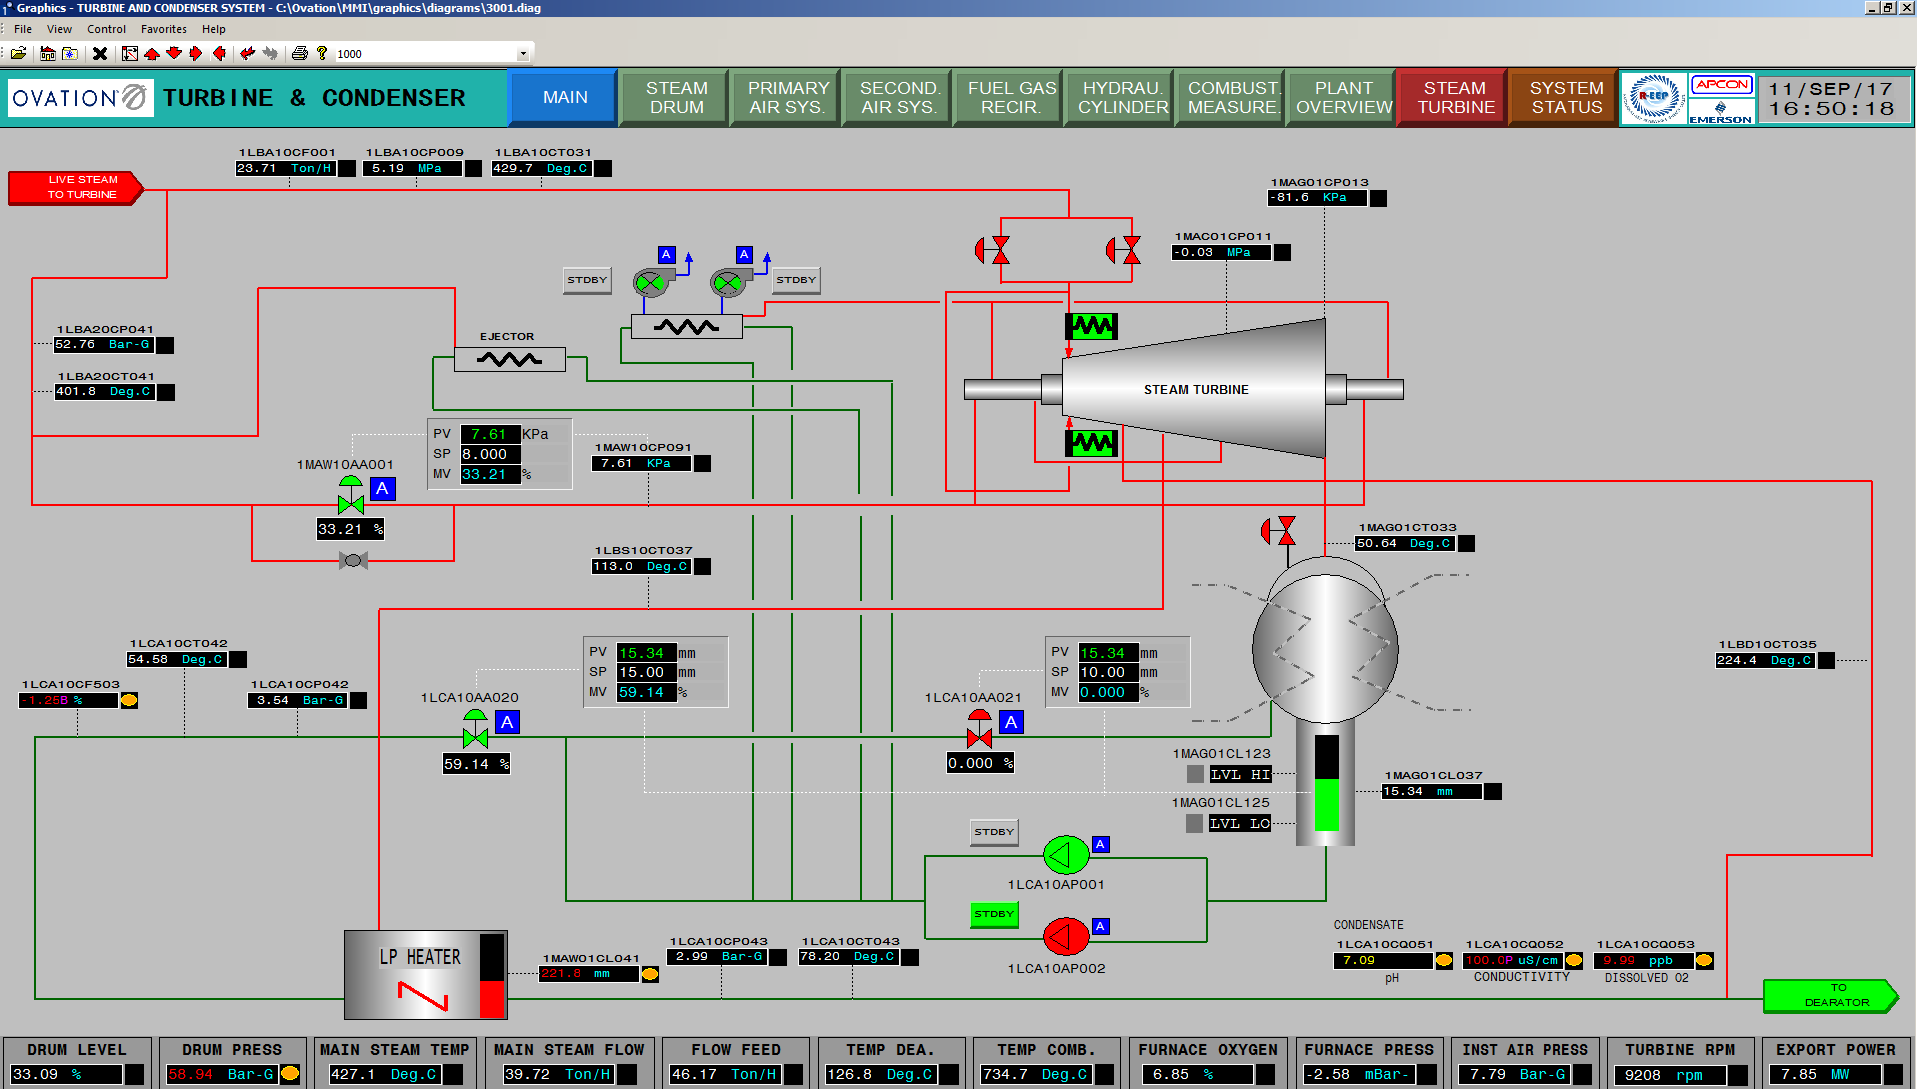 plant piping and instrumentation diagram house electrical